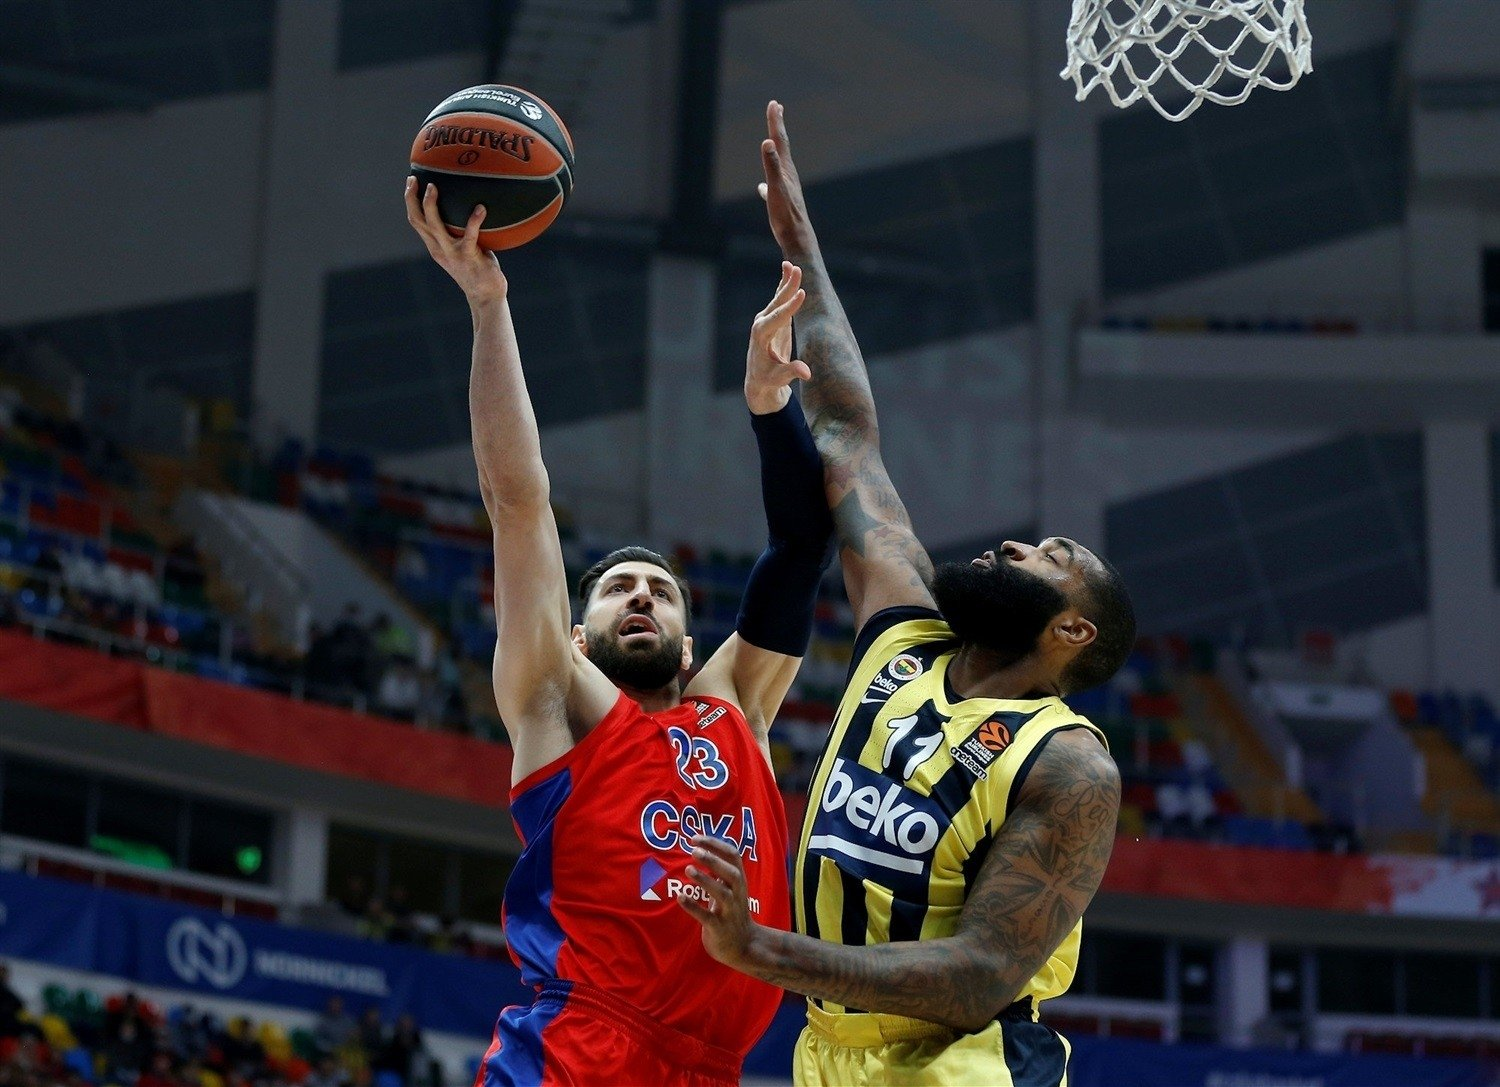 CSKA Moscow's Tornike Shengelia tries to score past and Fenerbahçe's Kyle O'Quinn in their THY EuroLeague Playoff Game 1 at the Megasport Arena, Moscow, Russia, April 21, 2021. (IHA Photo)